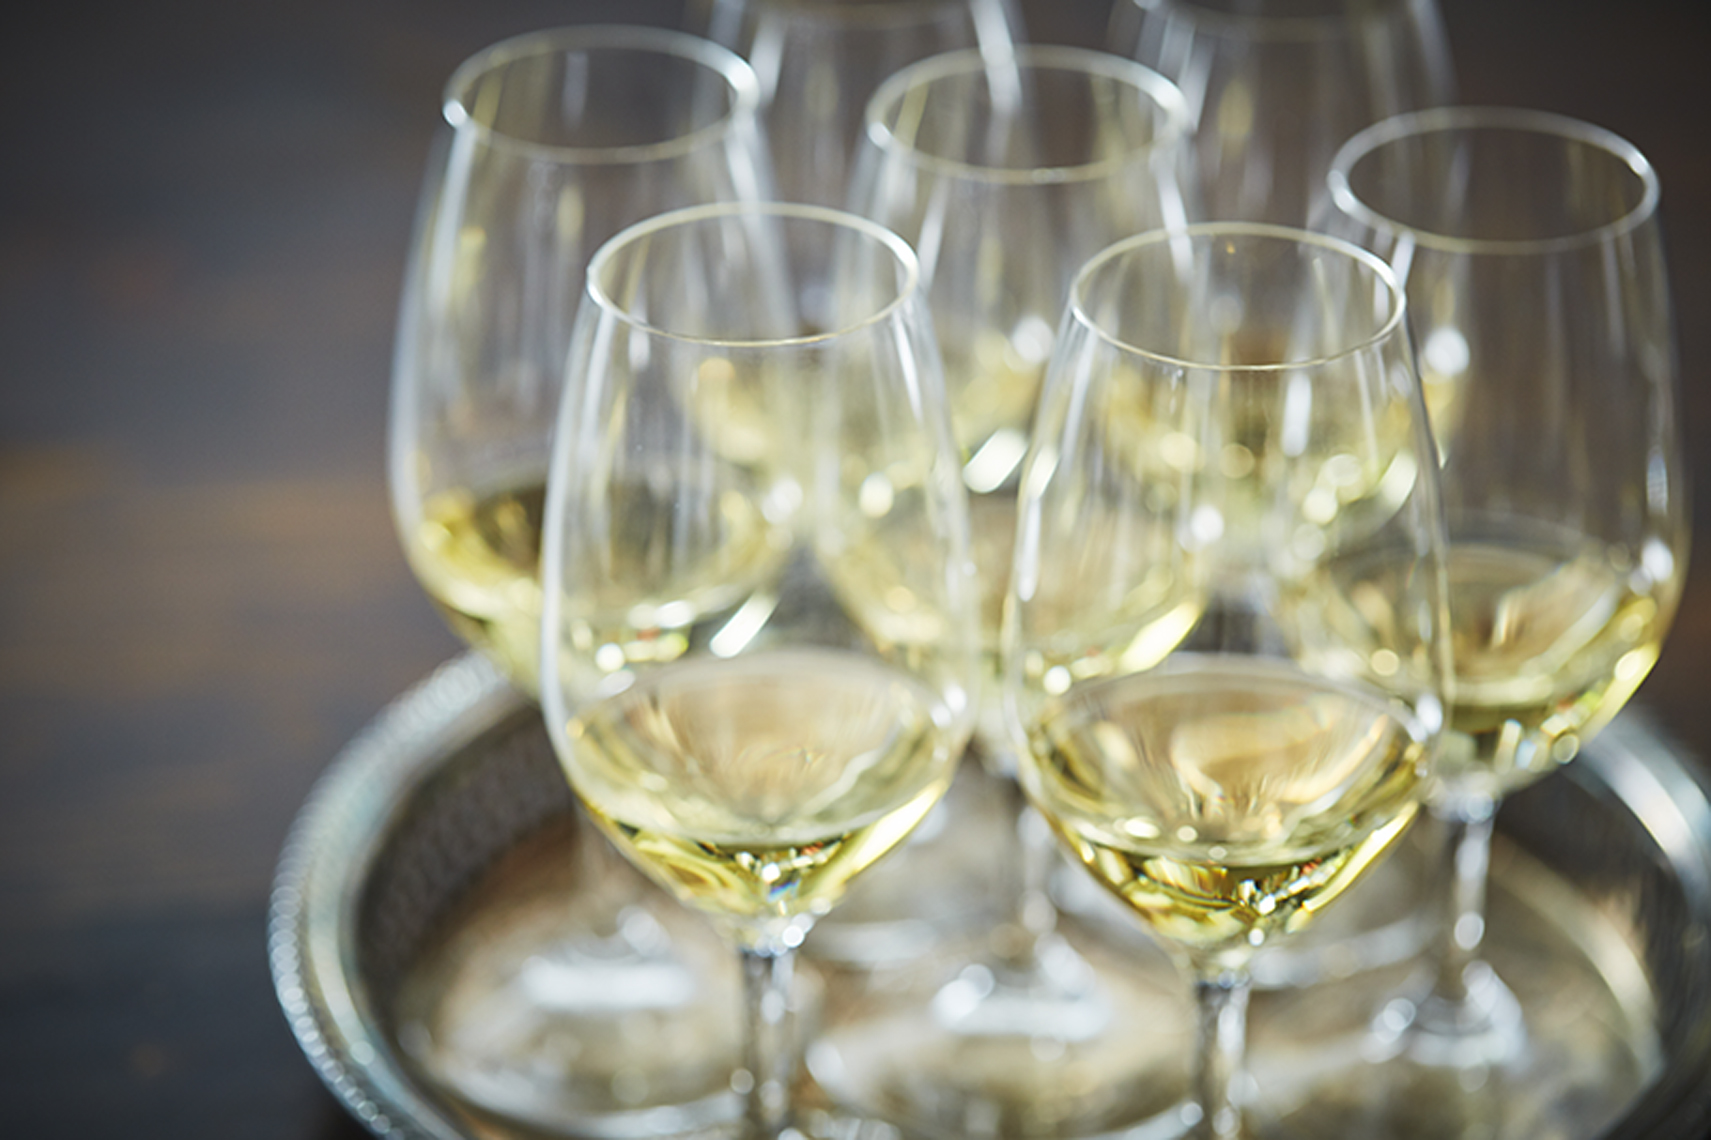 AlanCampbellPhotography, Chardonnay glasses on tray